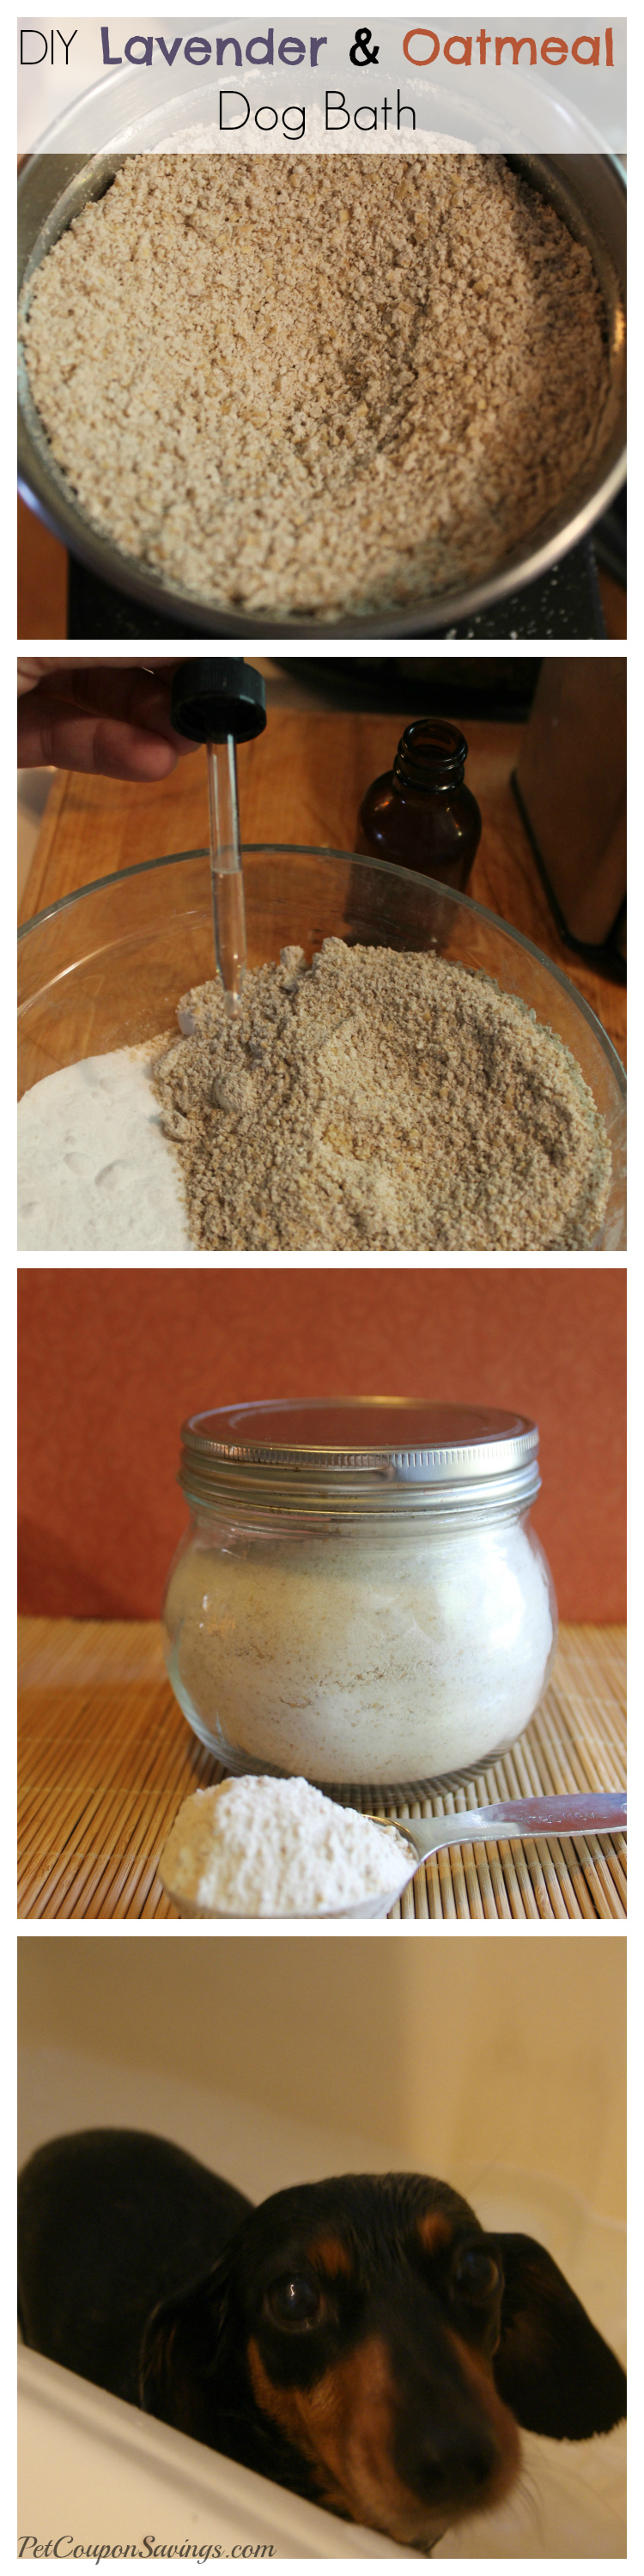 DIY Lavender and Oatmeal Dog Bath